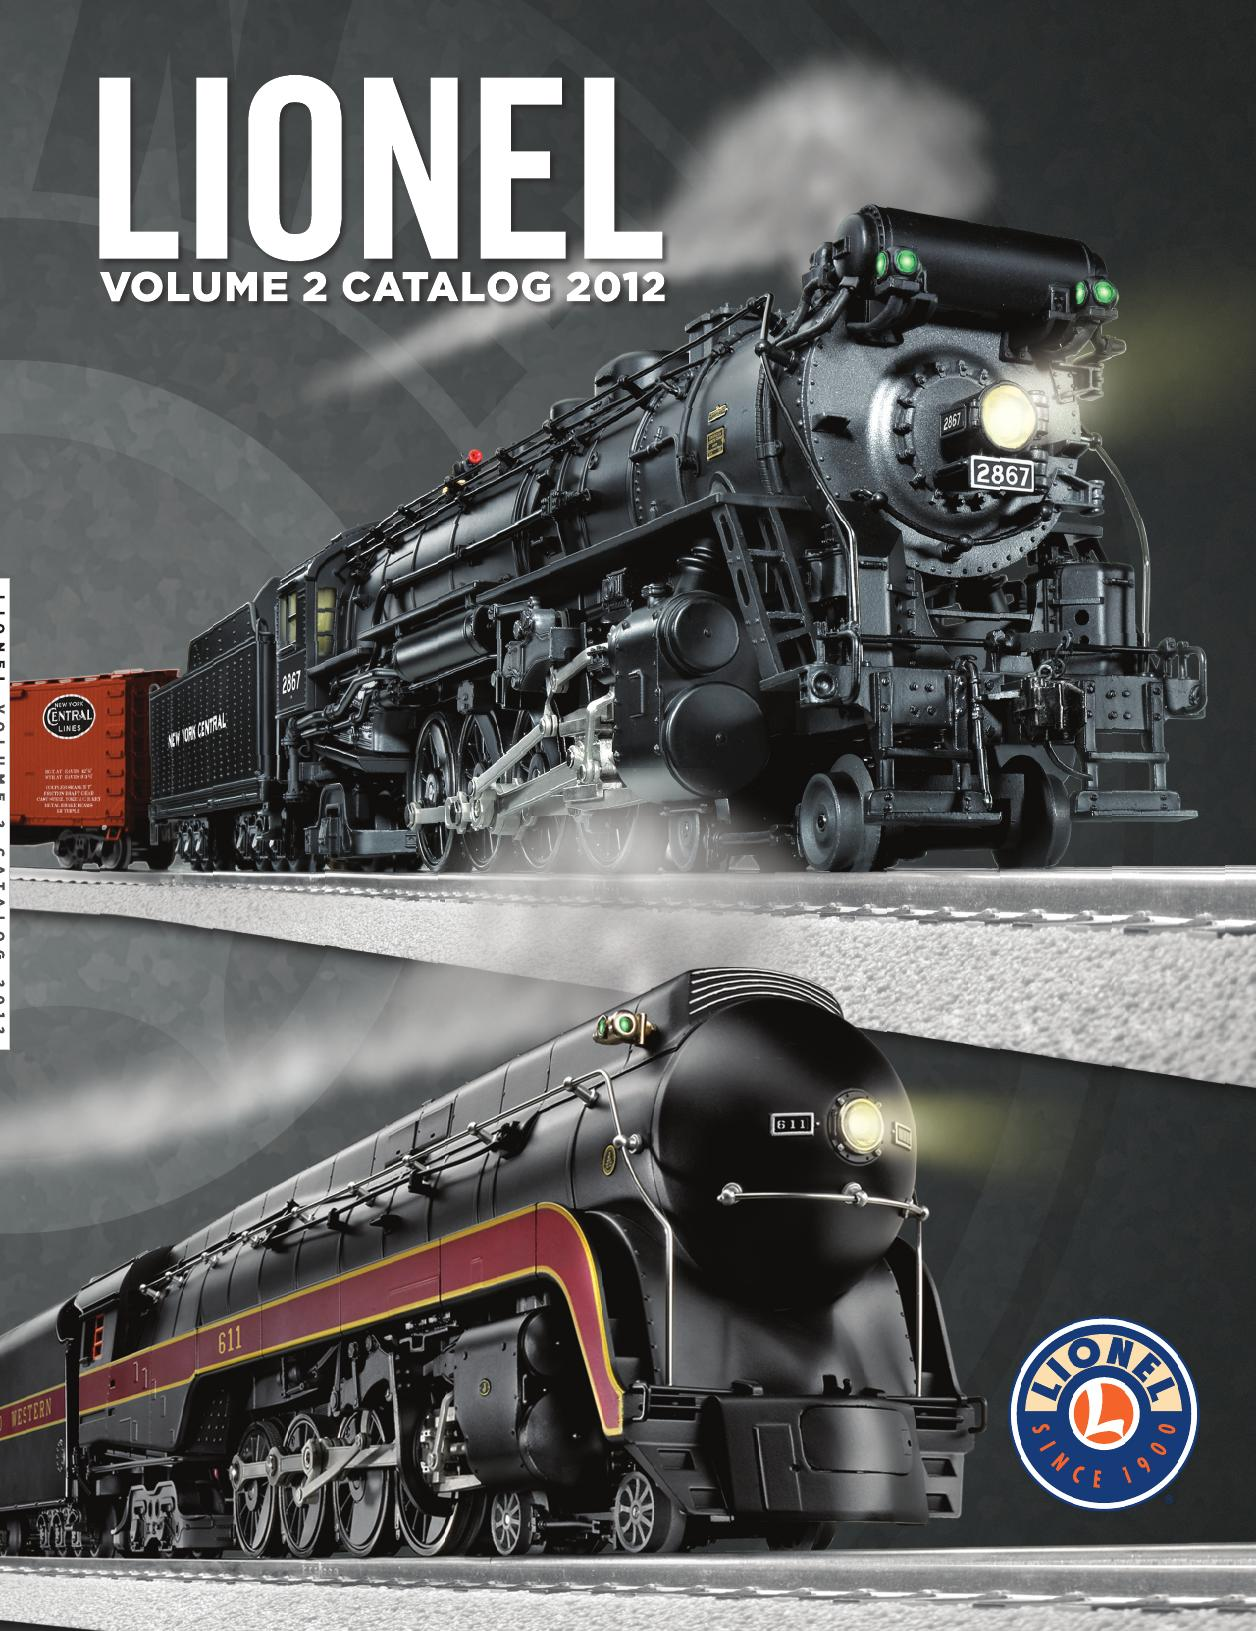 Lionel Catalogs - Volume 2 2012